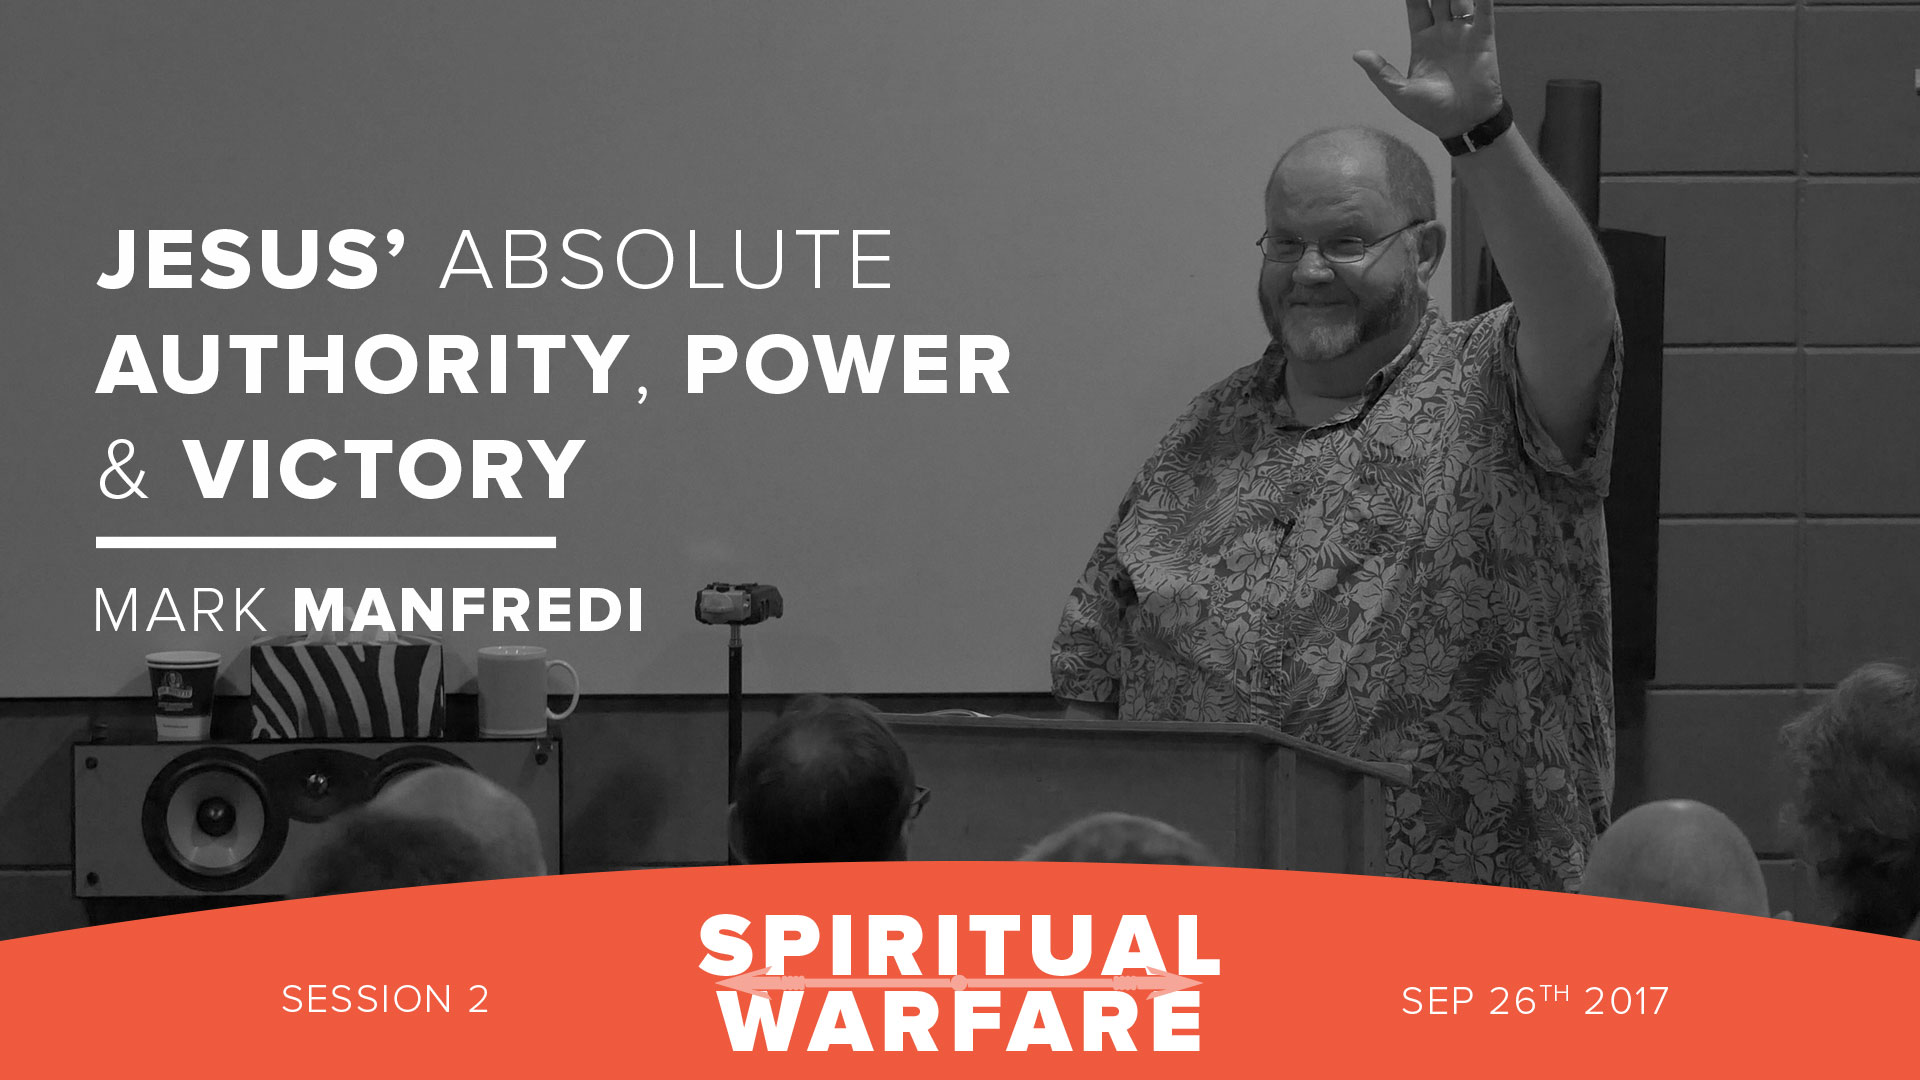 Jesus' absolute authority, power & victory